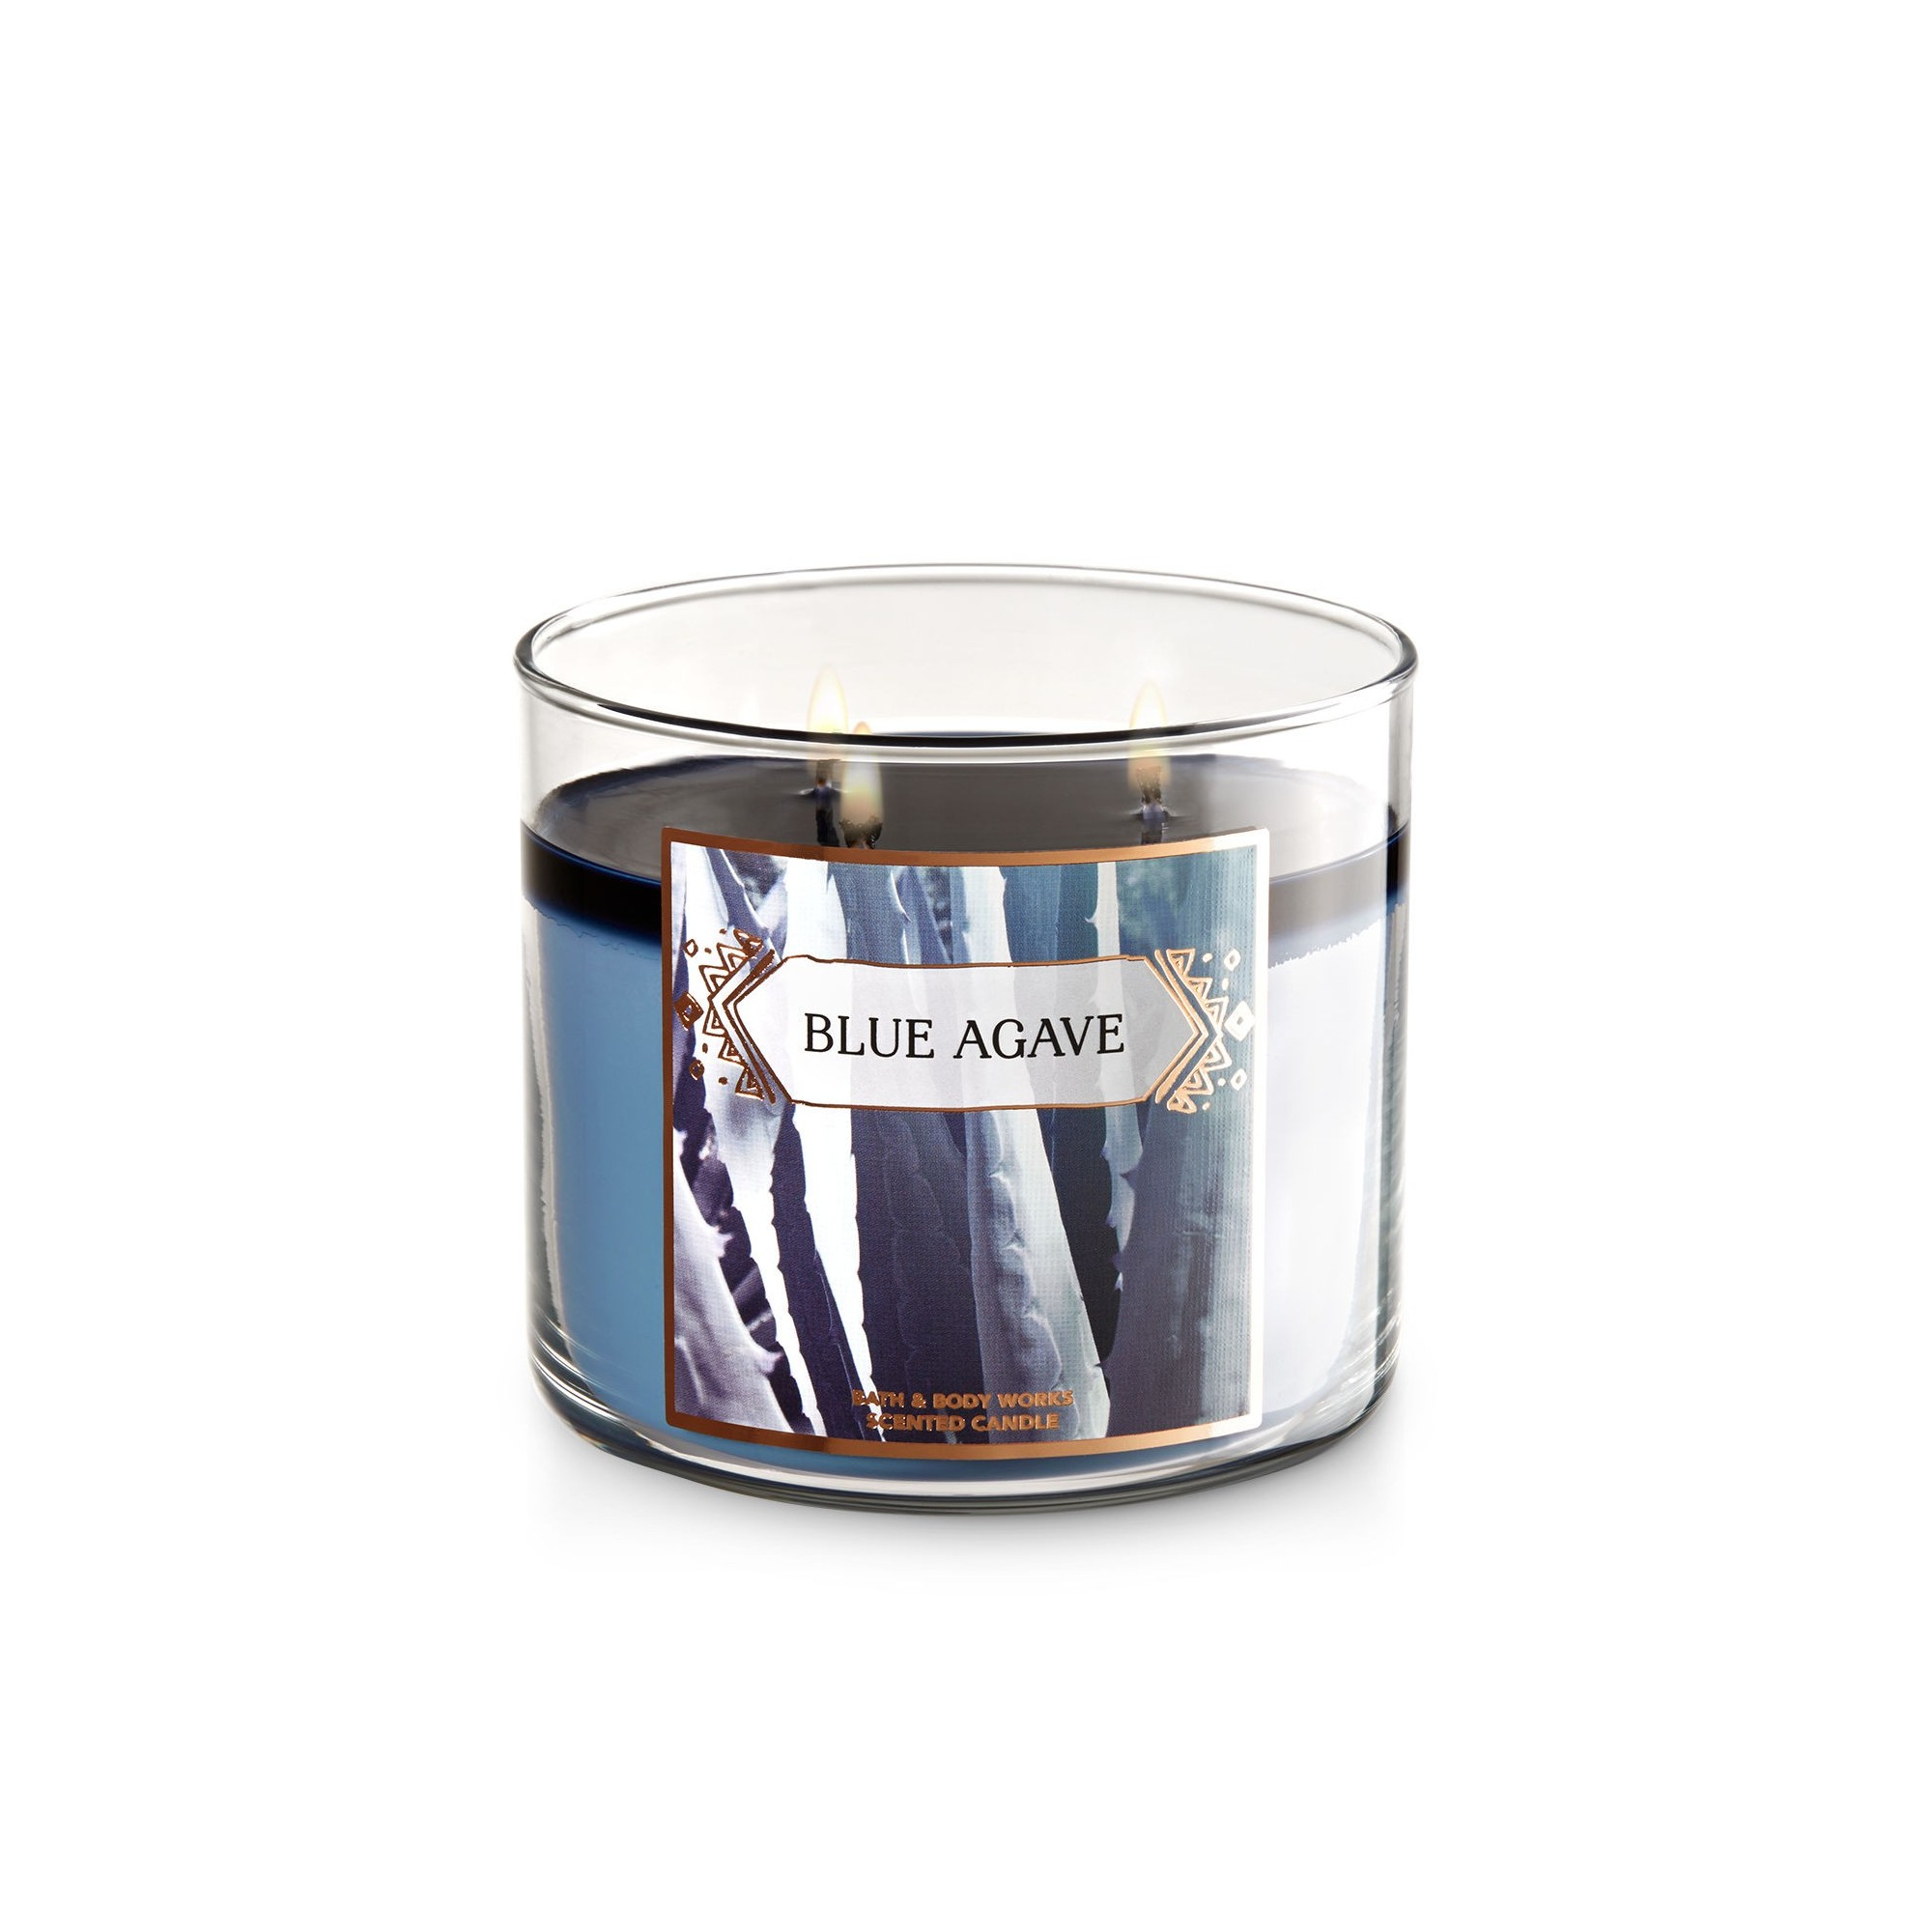 Bath & Body Works Blue Agave 3 Wick Scented Candle